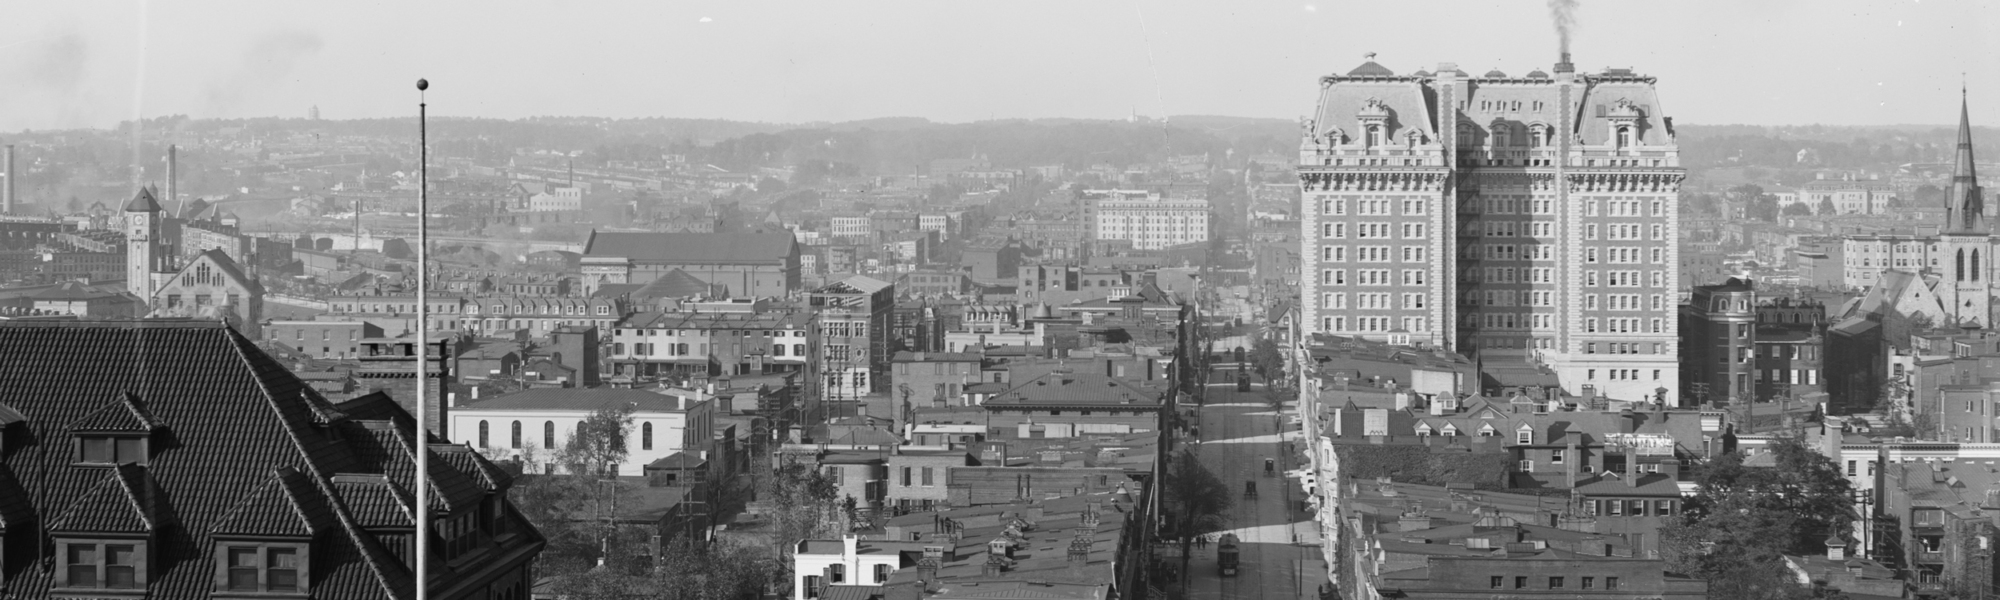 1906ViewFromMonument_Cropped